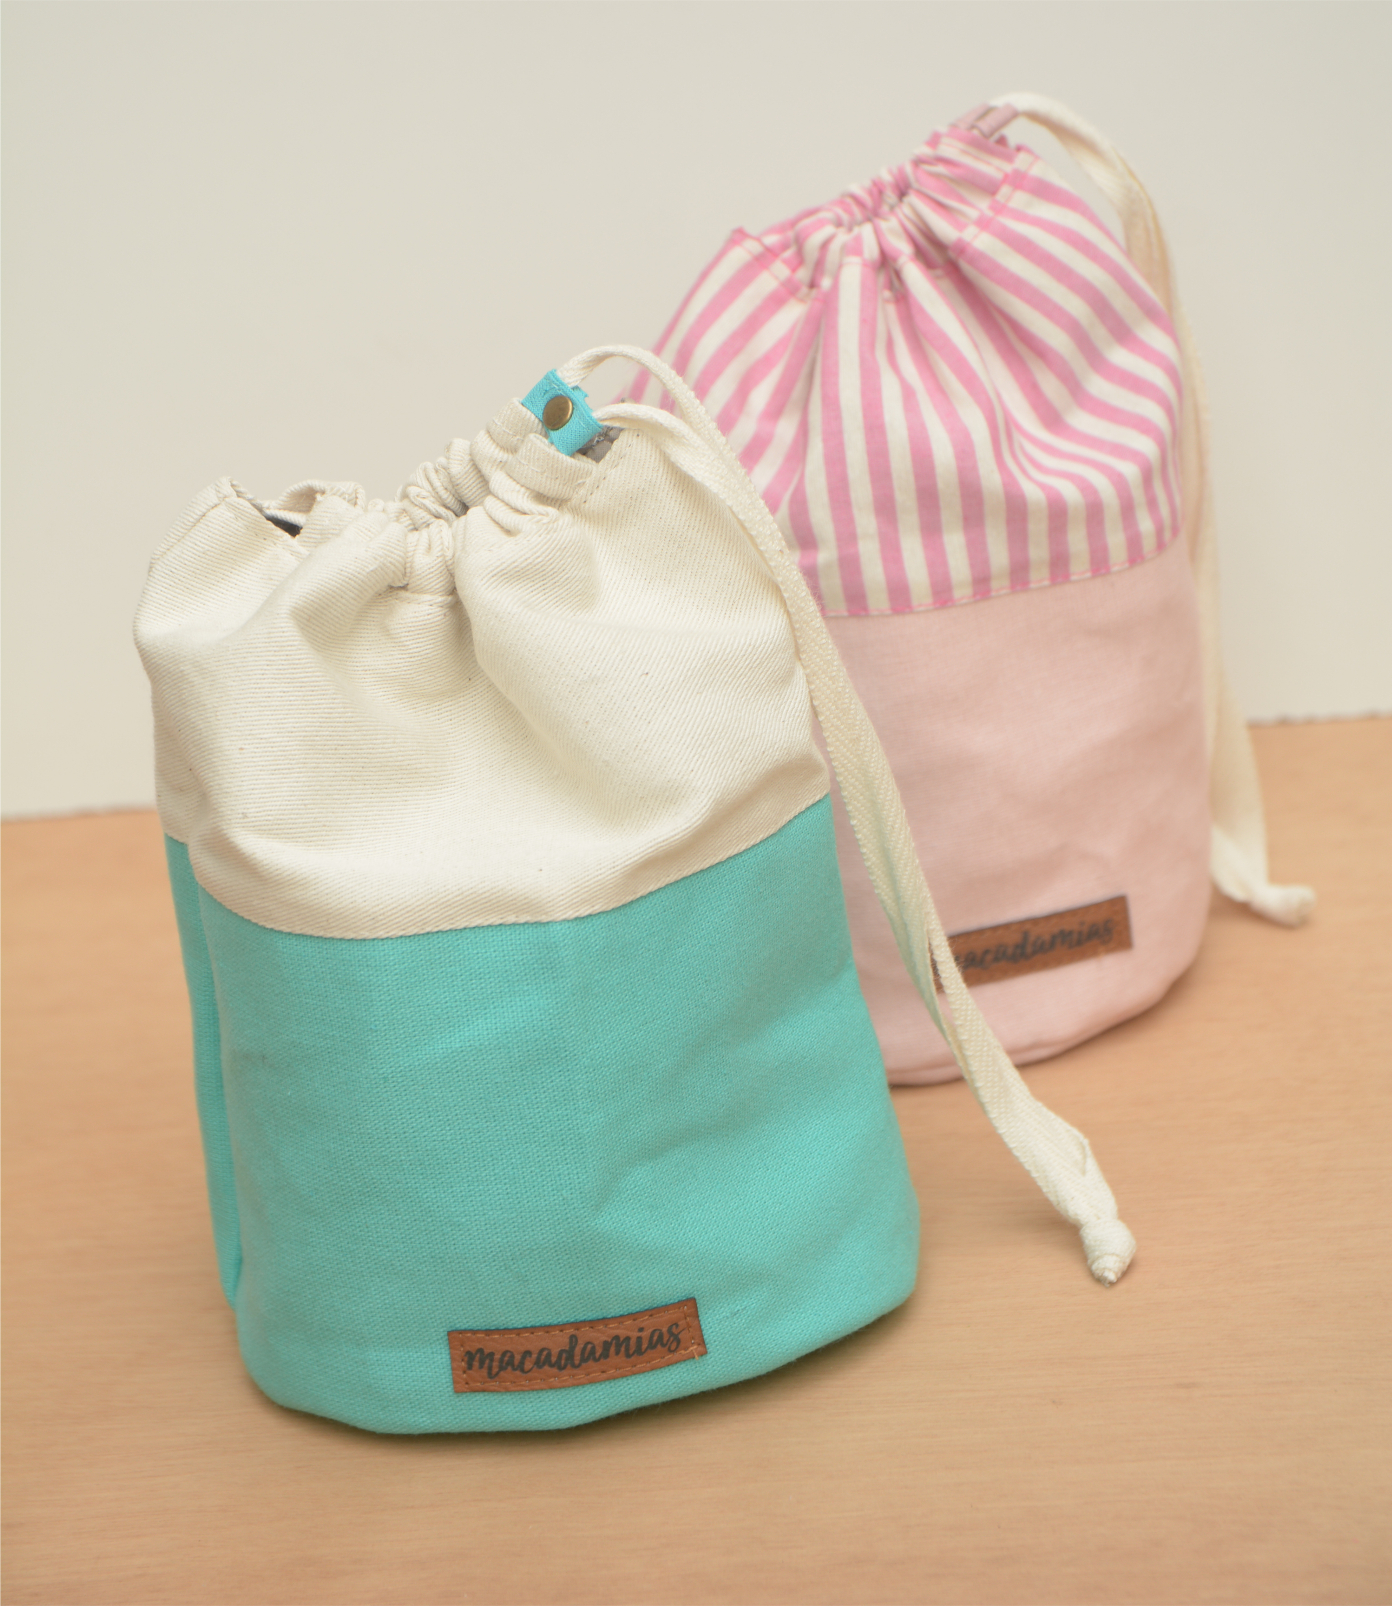 NEW! Circu-Bag